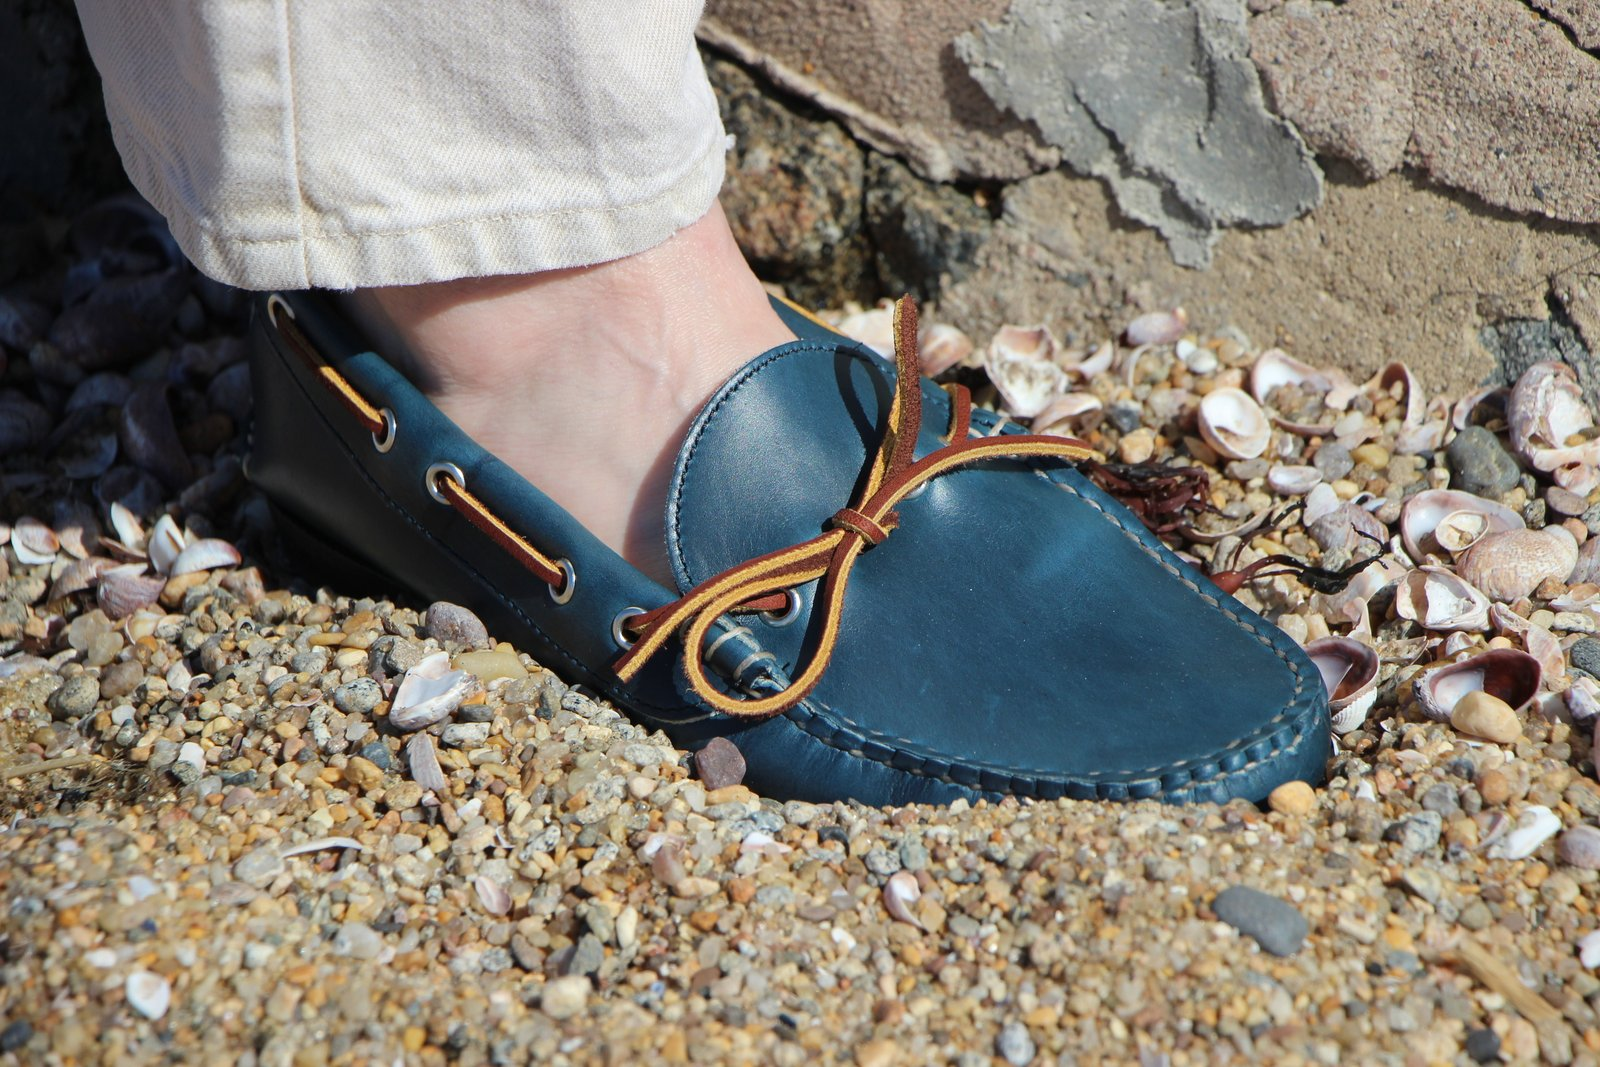 A blue and white shoes standing on a rock